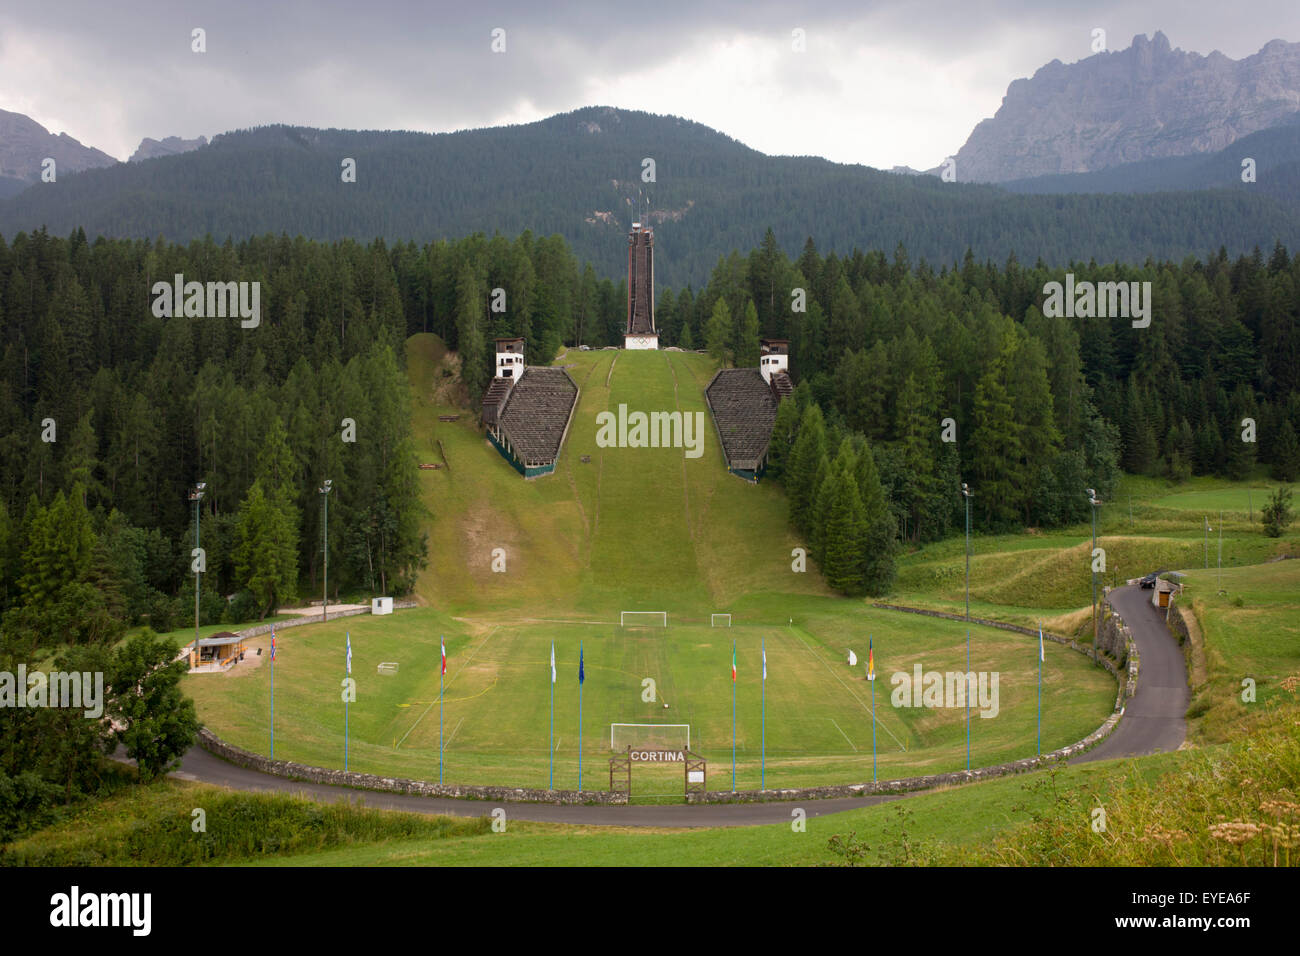 Landscape showing the ski jump for the 1956 Olympics in the city of Cortina d'Ampezzo, Veneto, Italy. - Stock Image